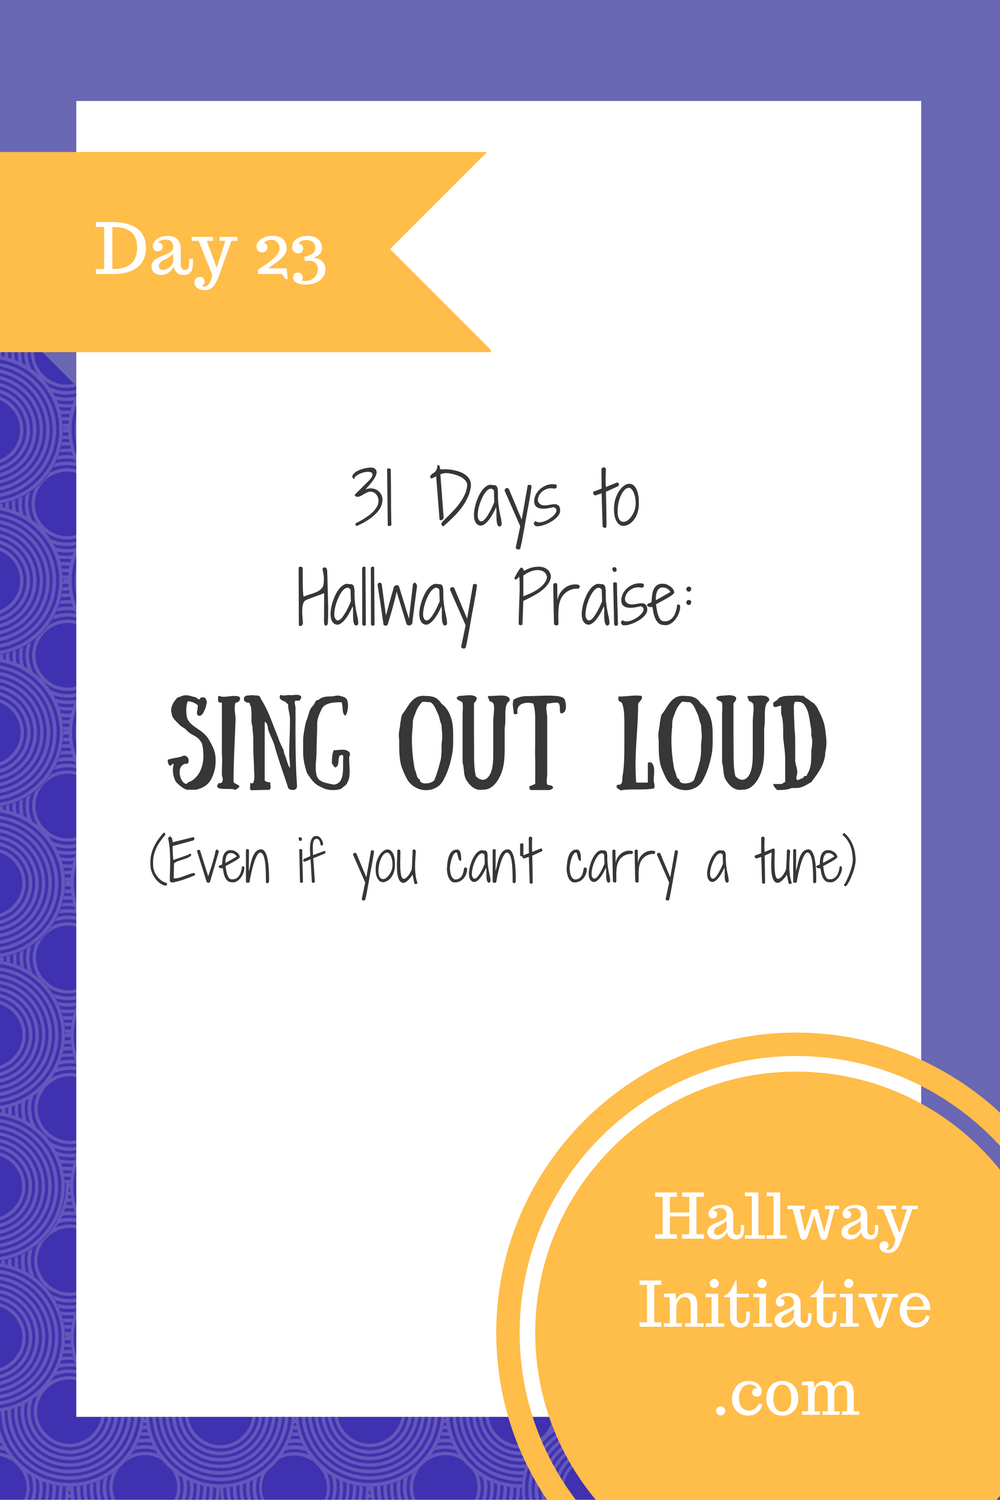 Day 23: sing out loud